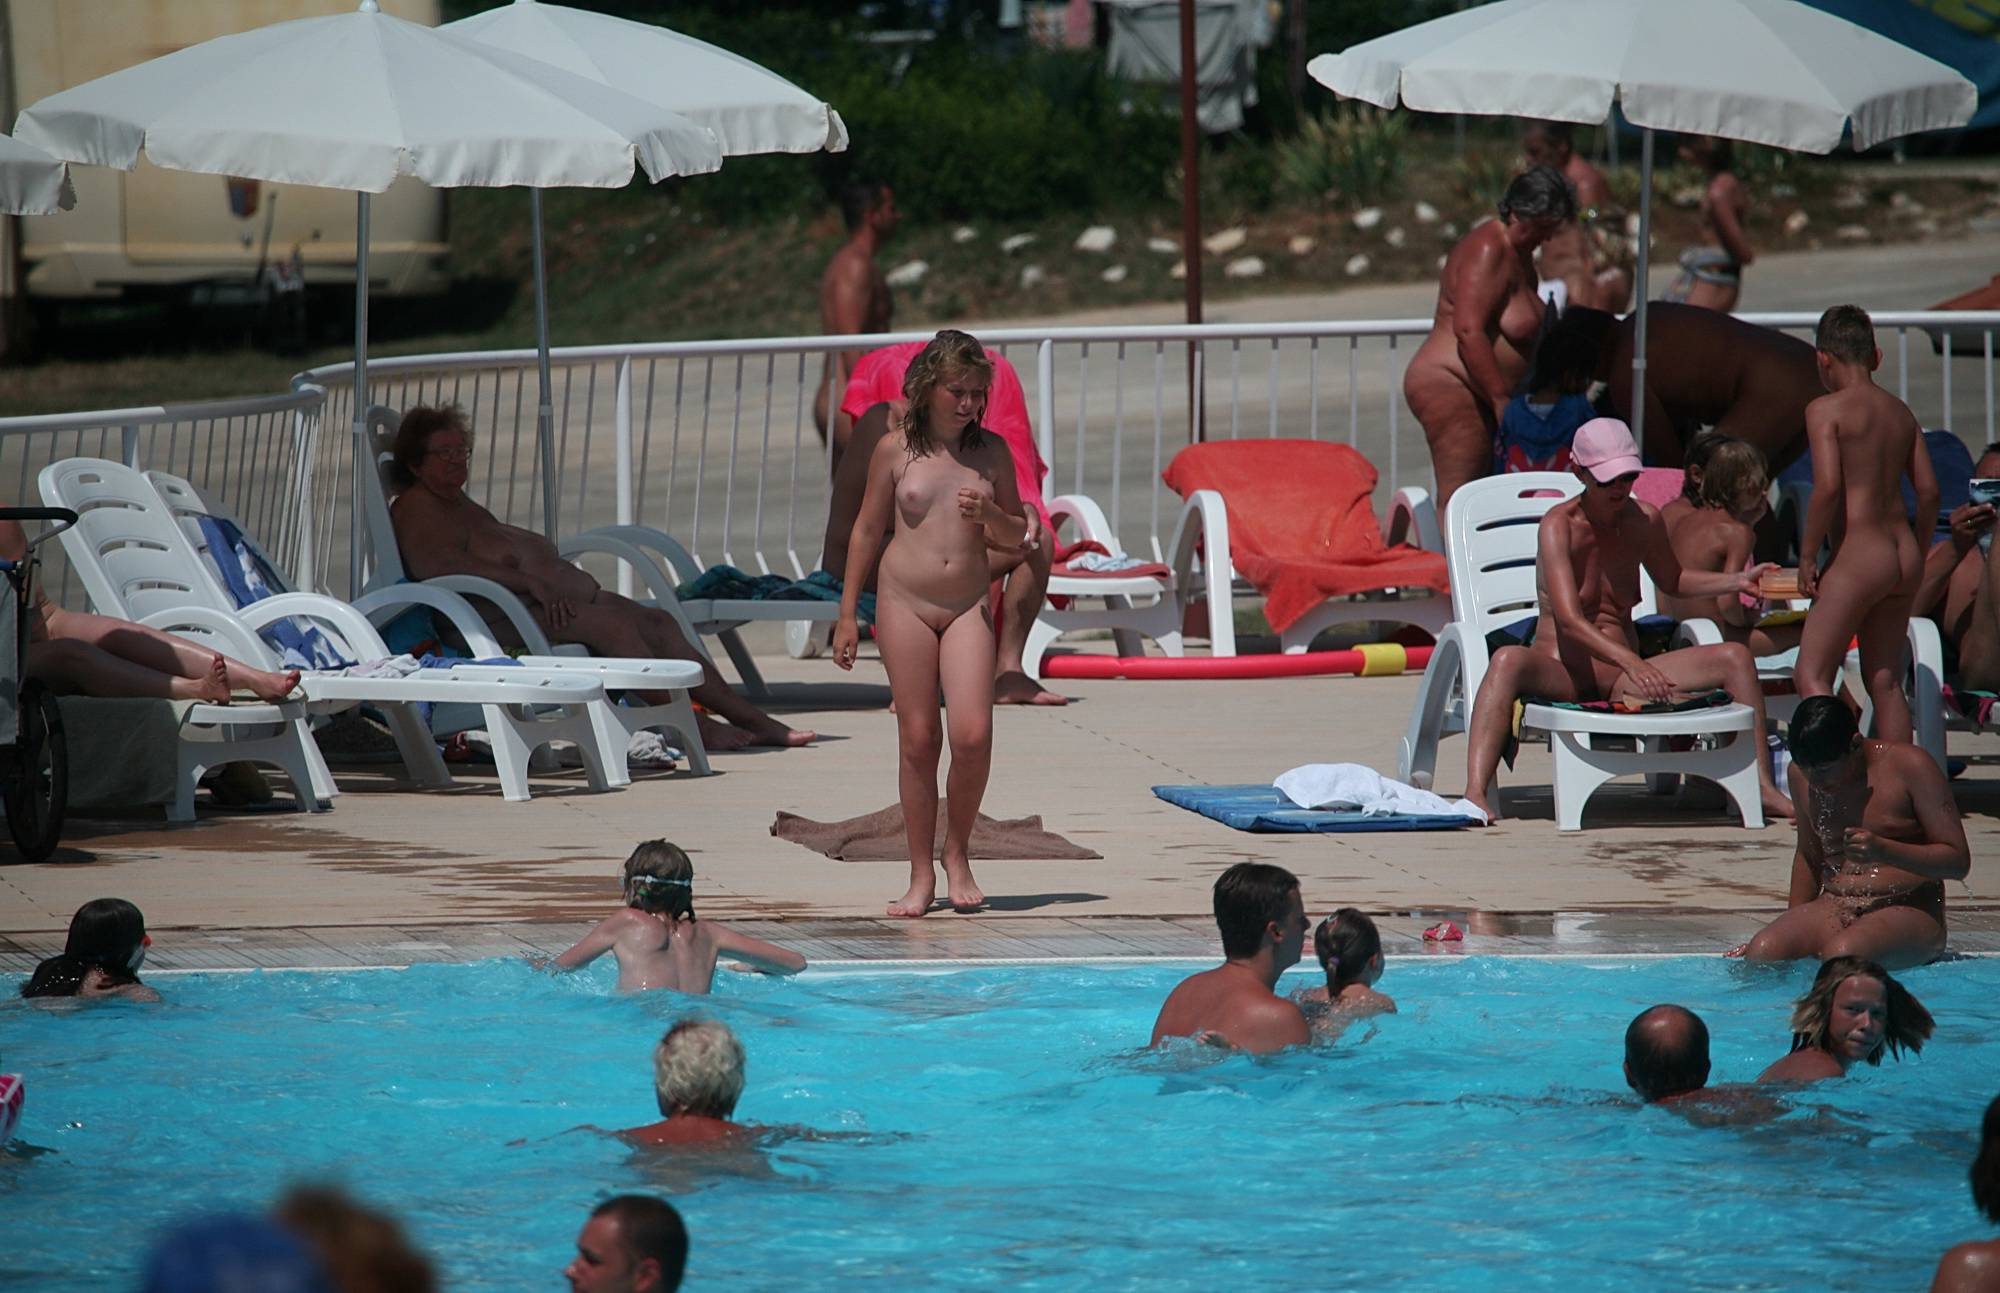 Purenudism Pics-Nude Perspective and Pools - 2